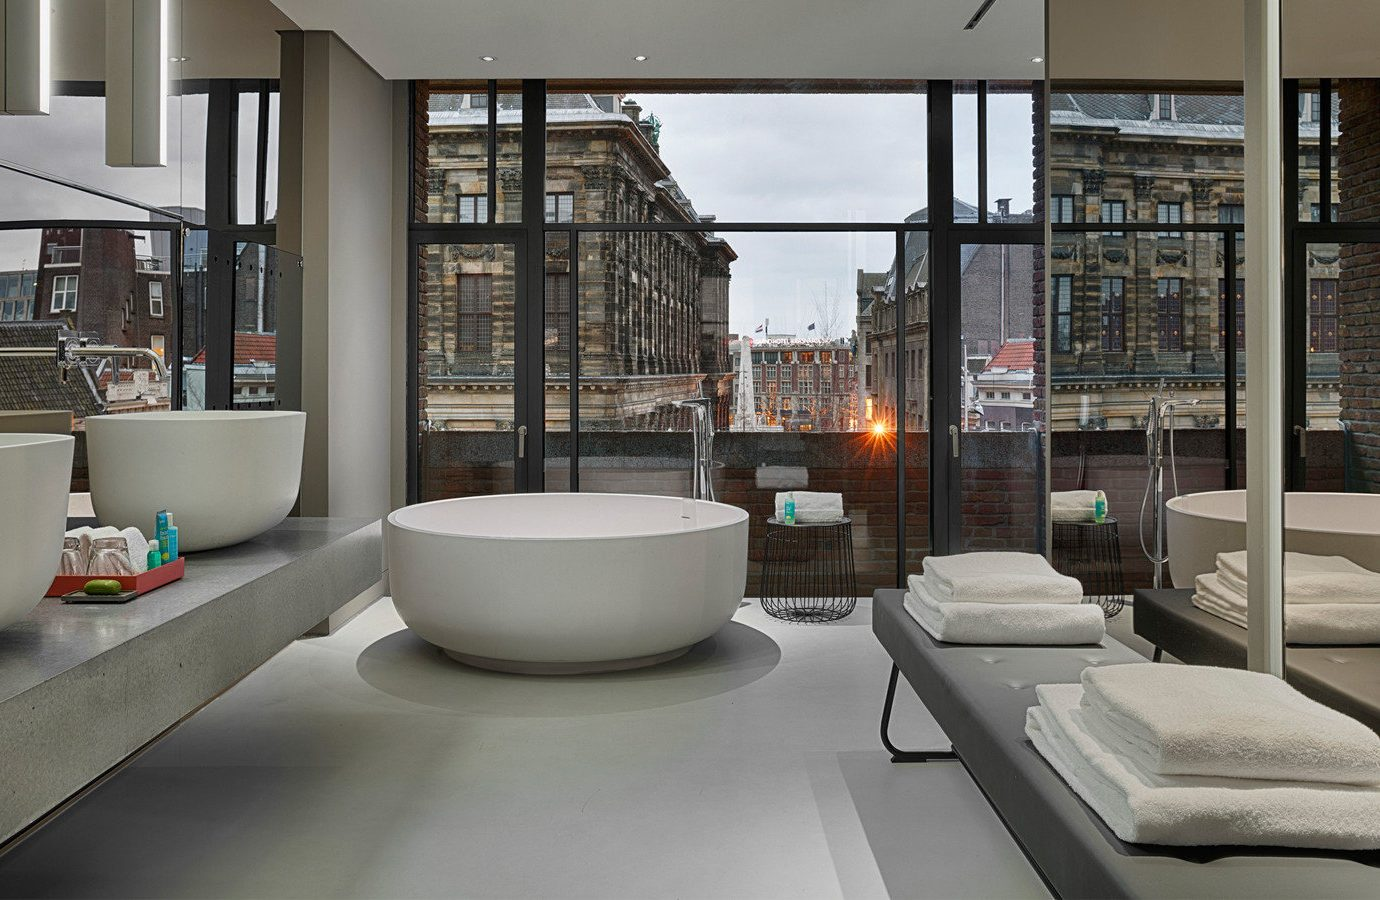 Amsterdam Hotels The Netherlands indoor window floor Architecture room interior design loft furniture Modern